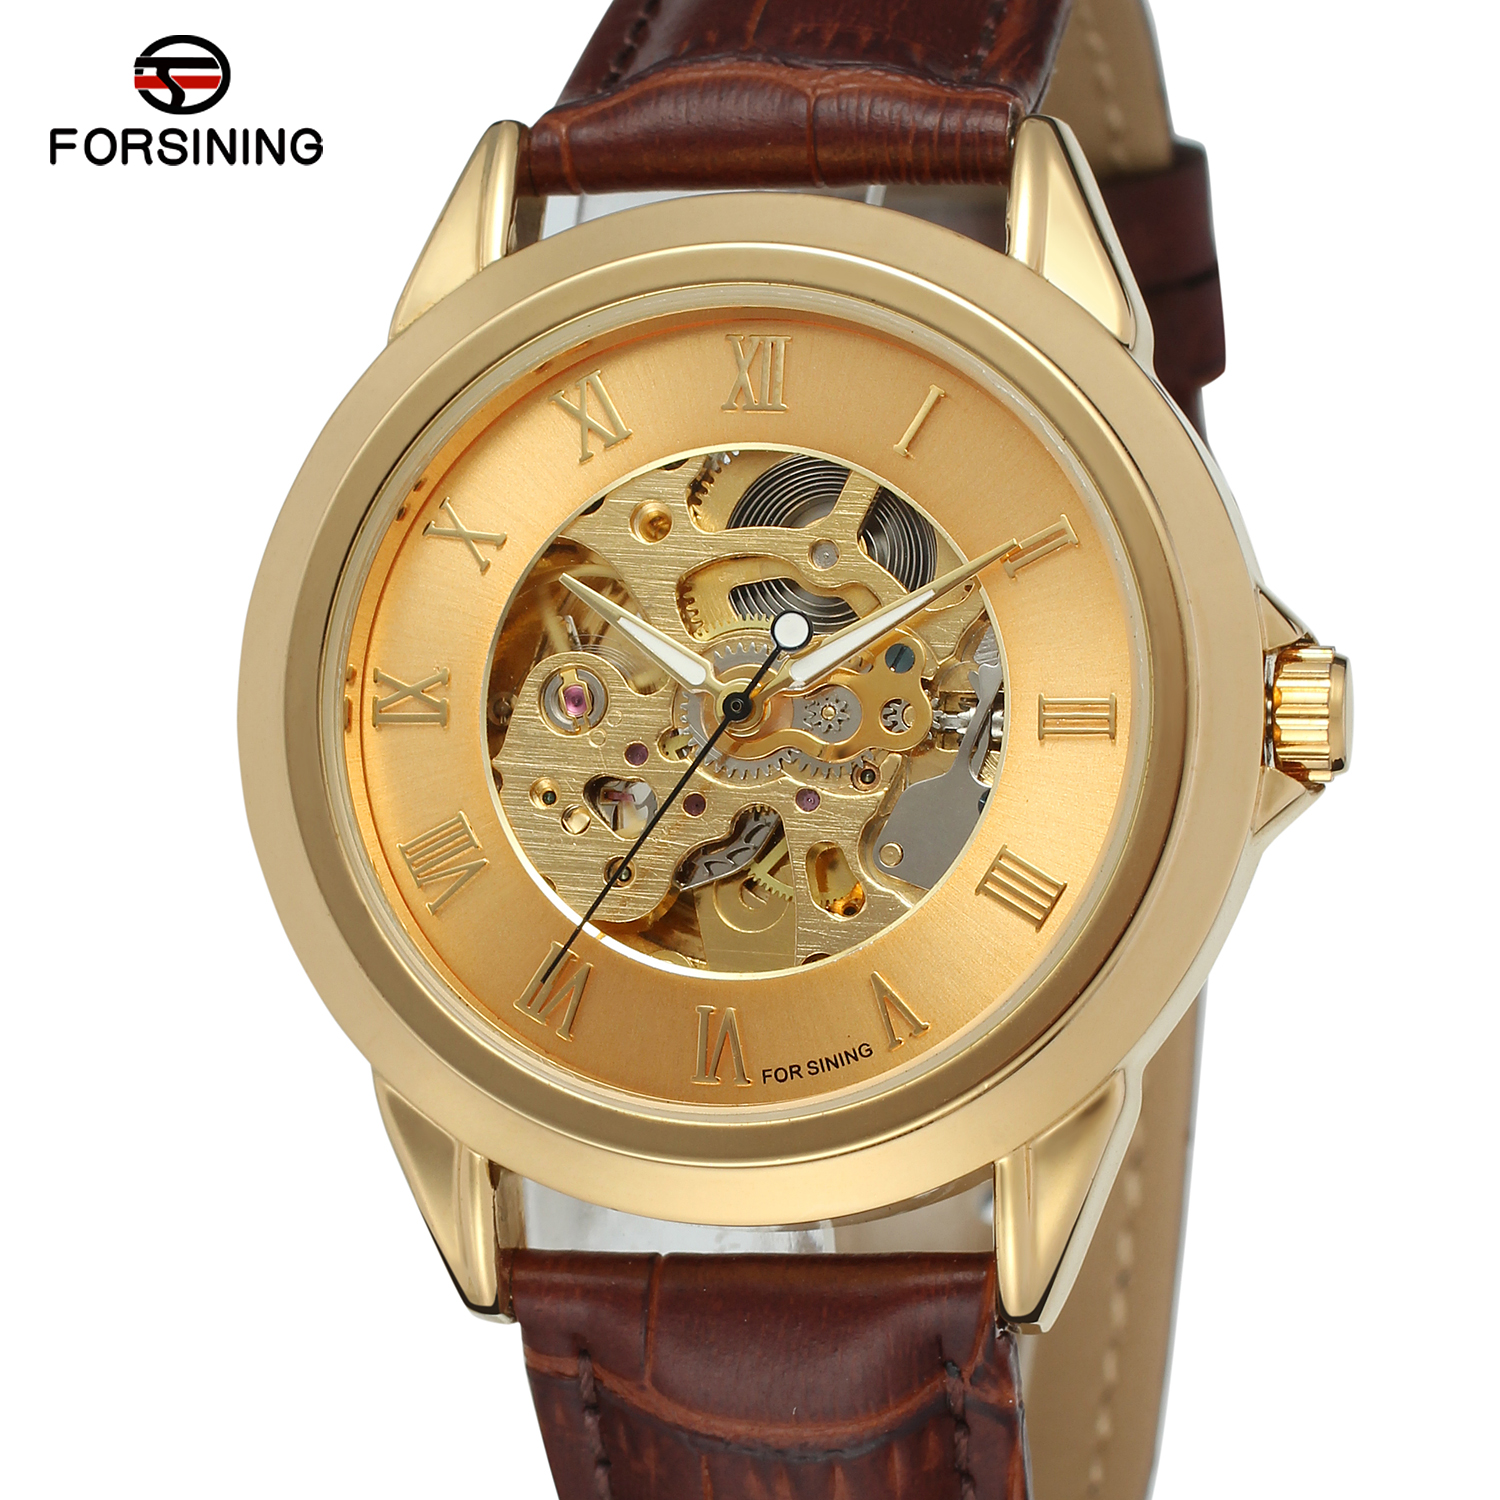 Fashion Forsining Top Brand Men Auto Mechanical  Leather Strap Watch Luxury Gold Bezel Roman Number Skeleton Dial Wrist WatchesFashion Forsining Top Brand Men Auto Mechanical  Leather Strap Watch Luxury Gold Bezel Roman Number Skeleton Dial Wrist Watches